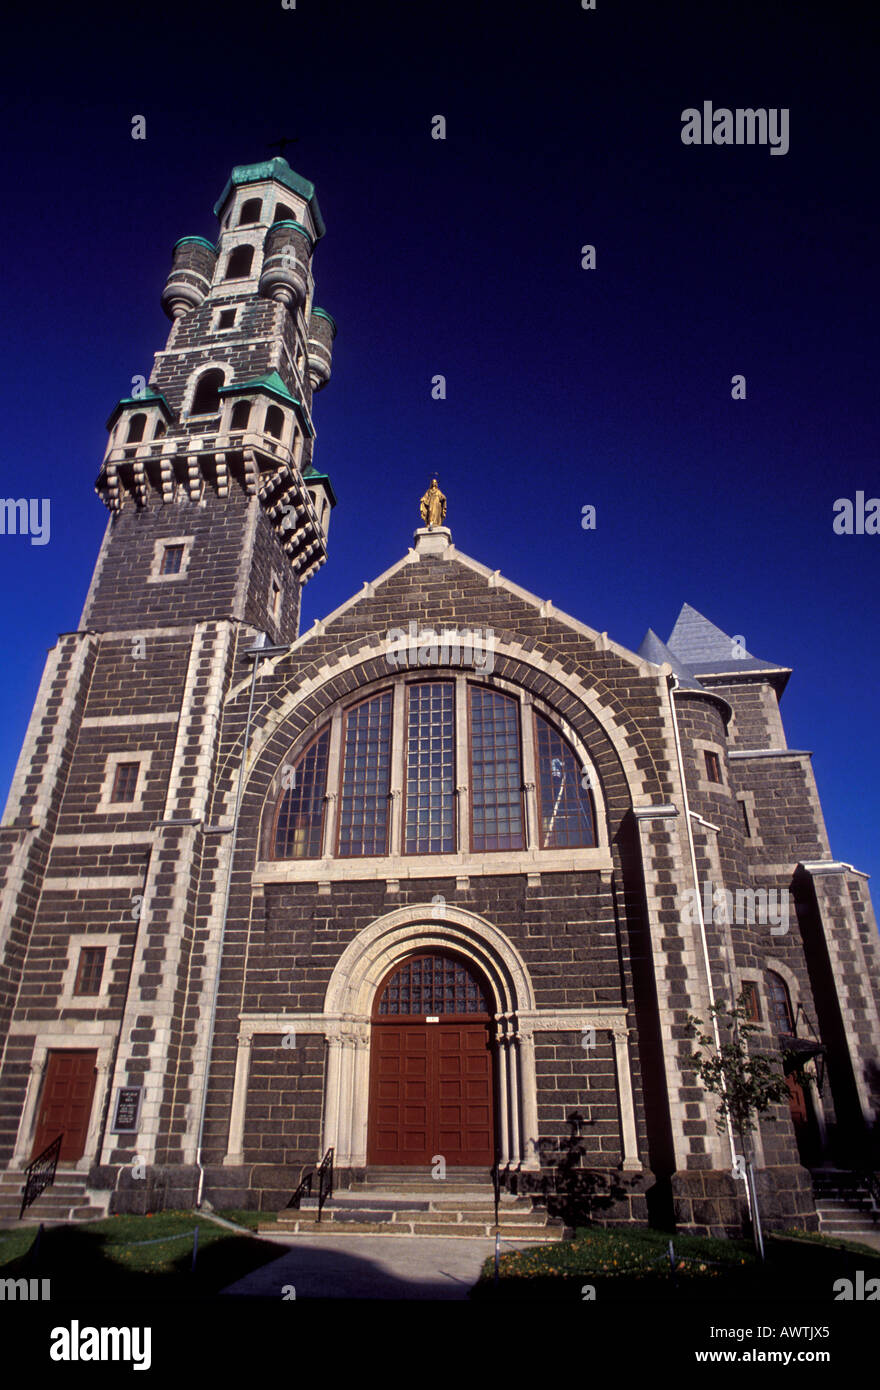 eglise saint coeur de marie church quebec city quebec province stock photo royalty free. Black Bedroom Furniture Sets. Home Design Ideas